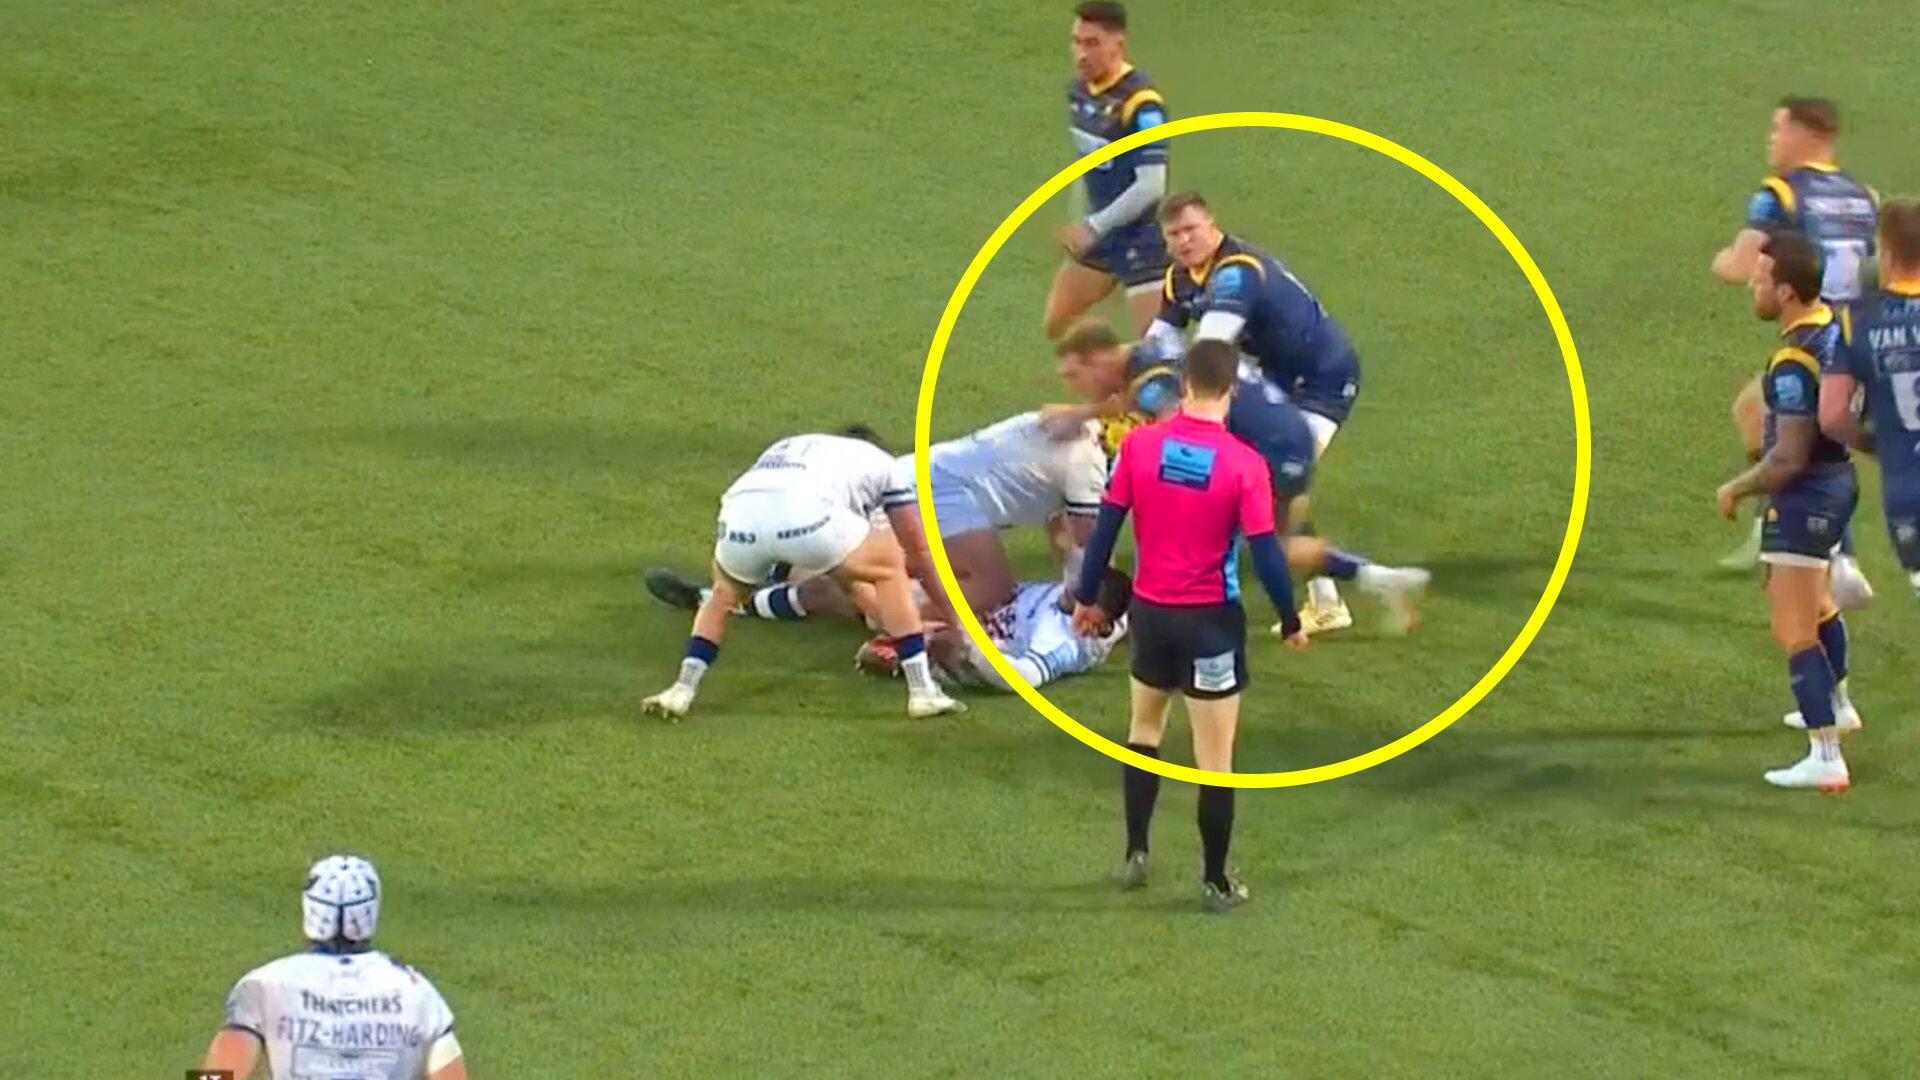 Chris Ashton in hot water as footage shows him potentially faking injury